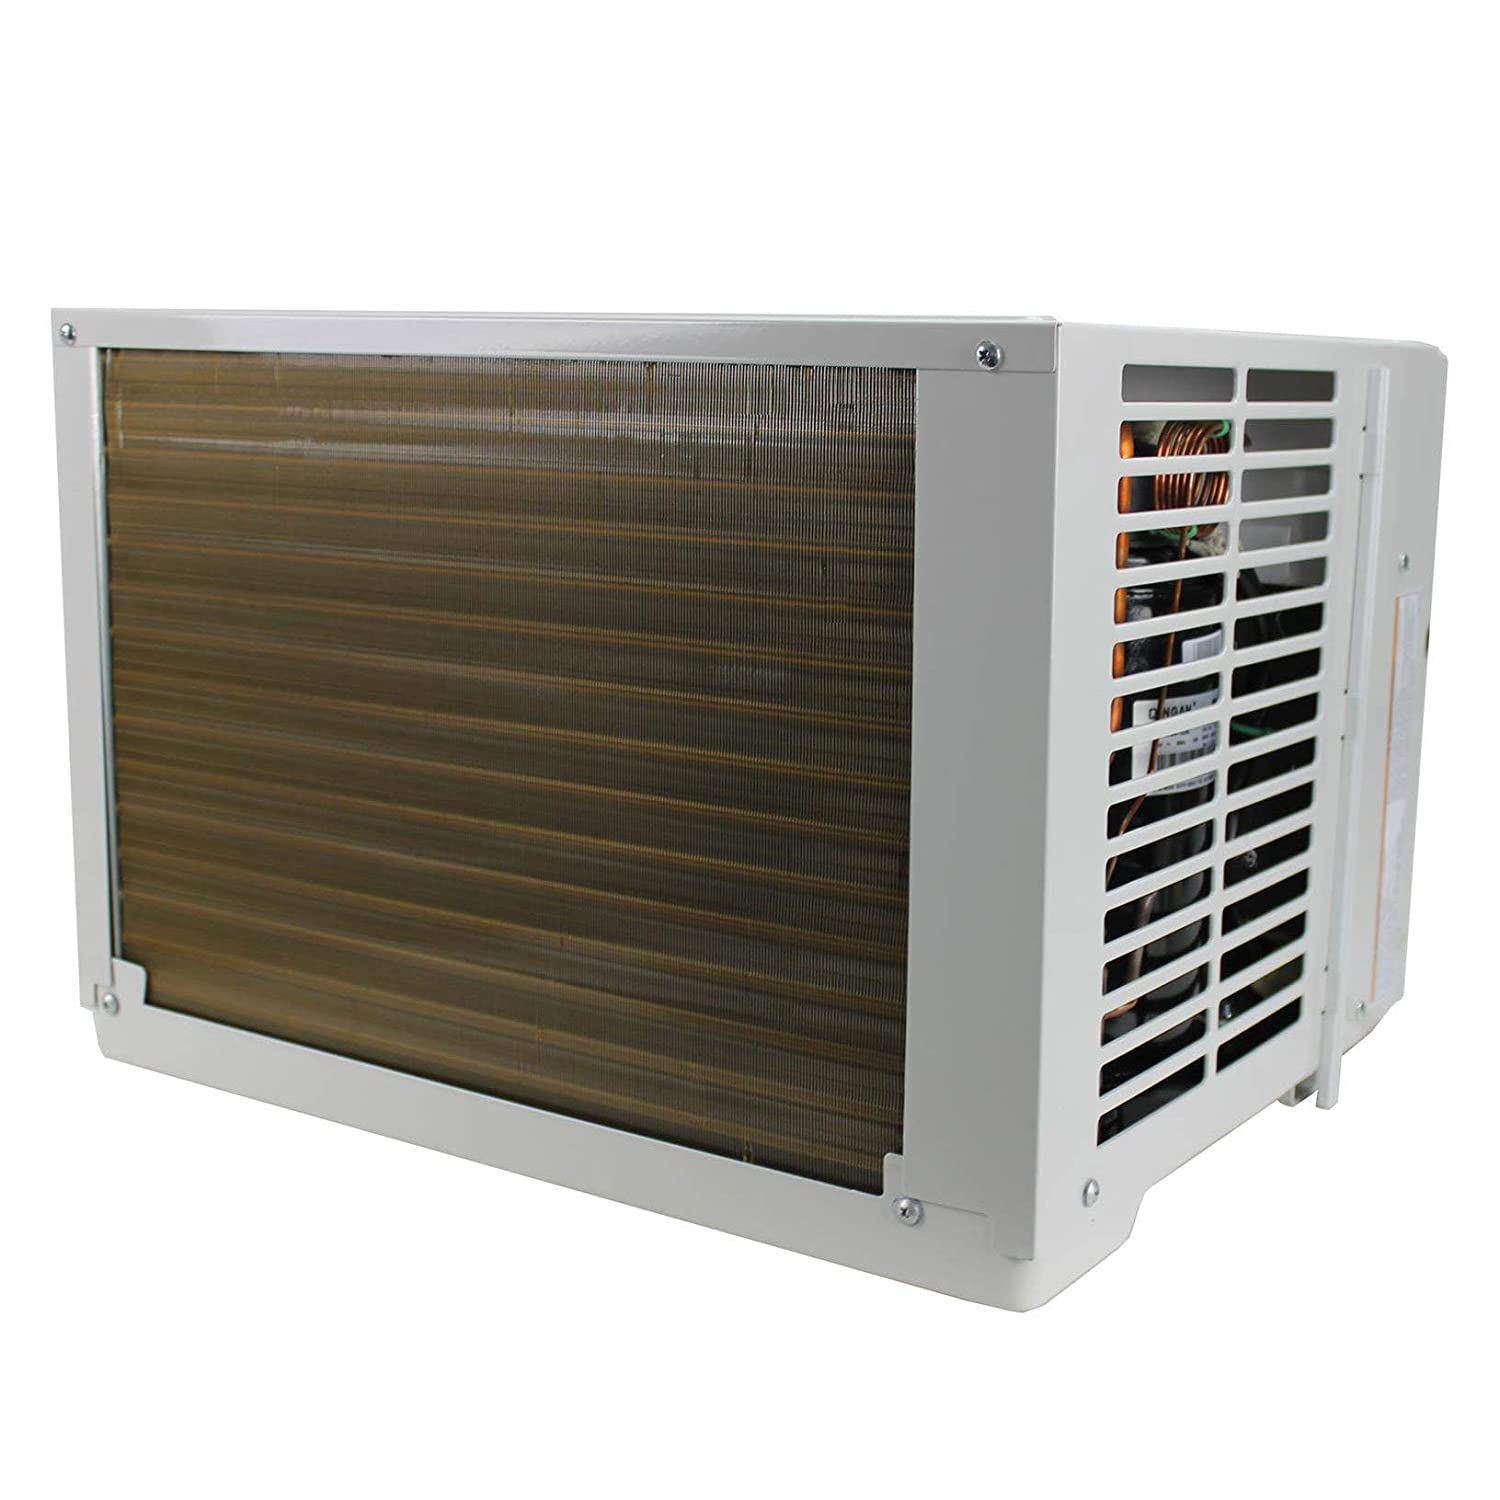 Cool Living 6,000 BTU Home Office Window Mount Air Conditioner